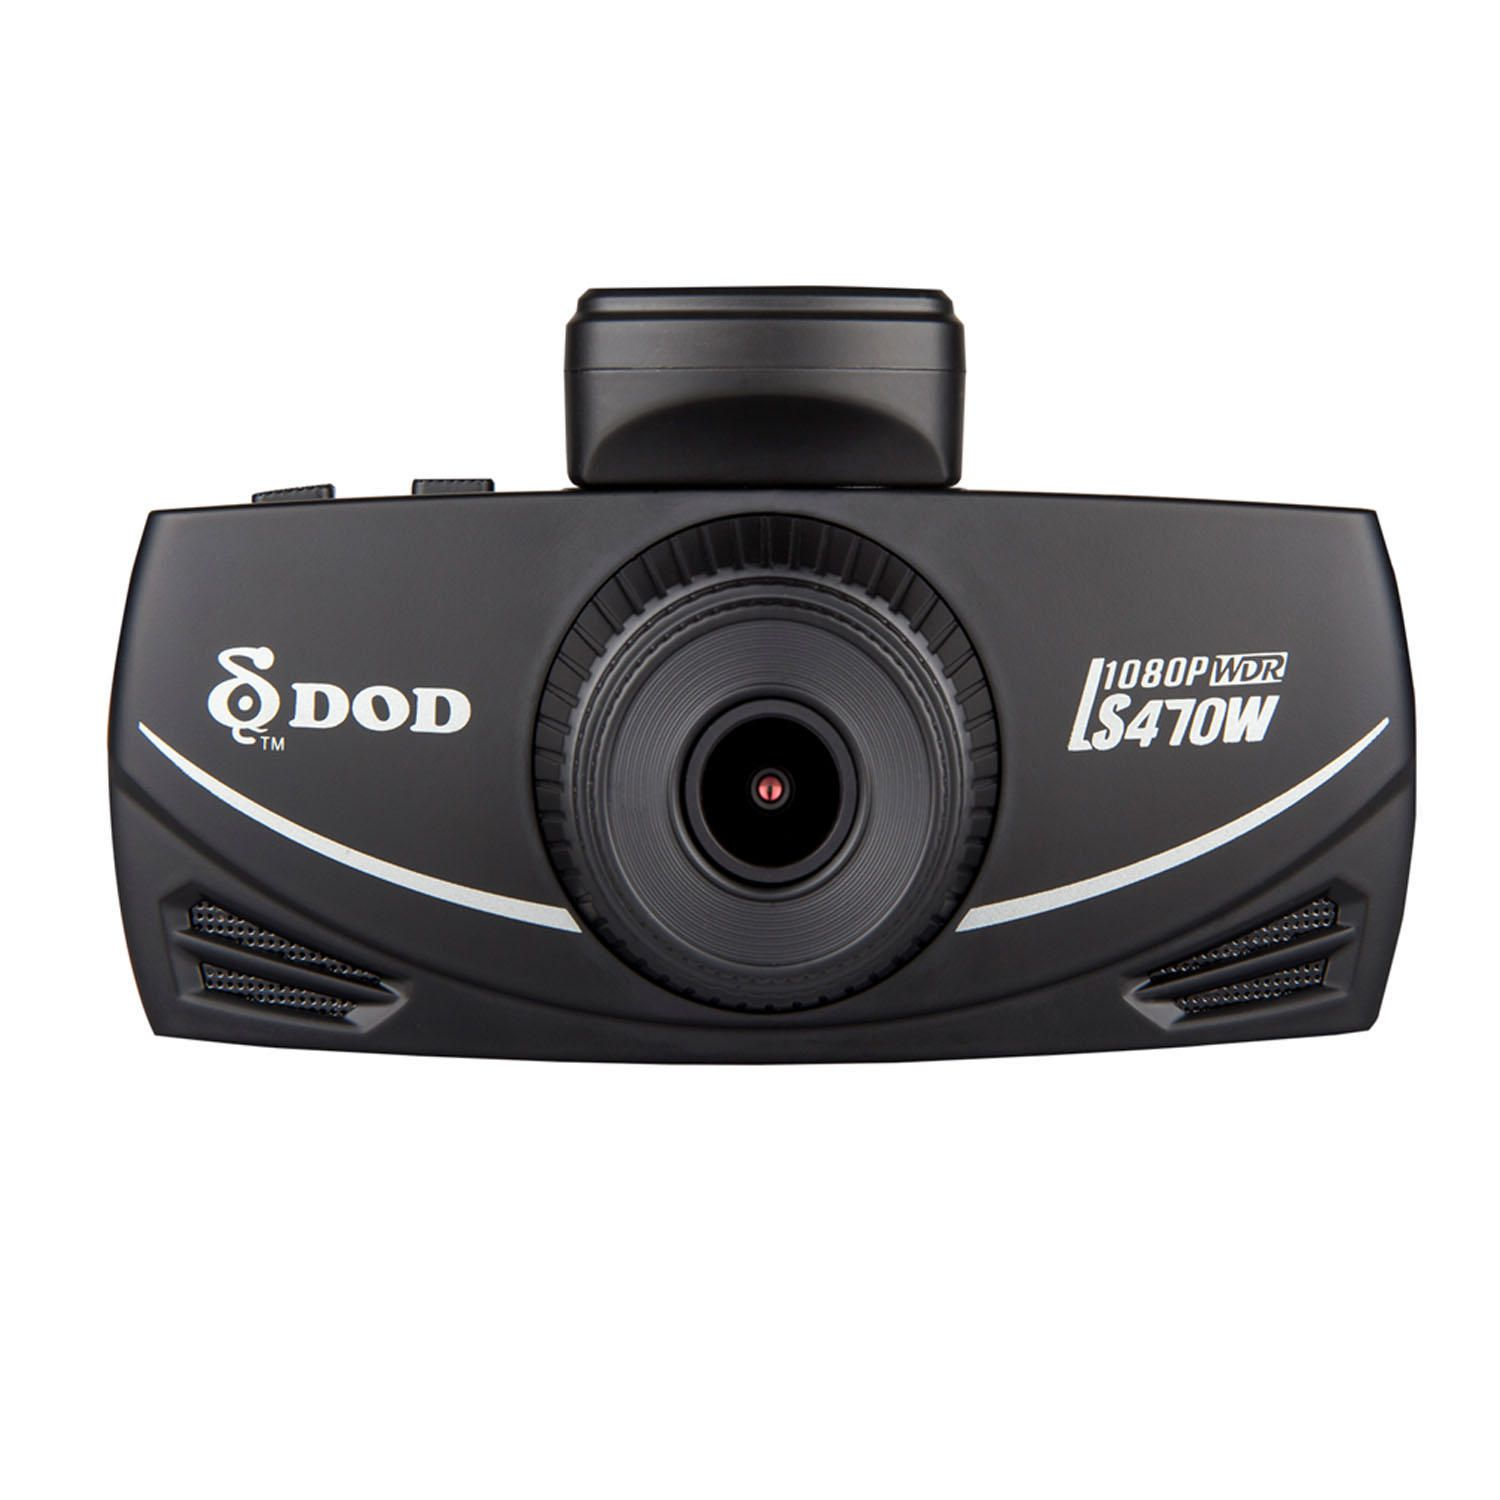 Camera Cameras For Sale At Walmart gps dash cameras walmart canada dod ls470w dashboard camera